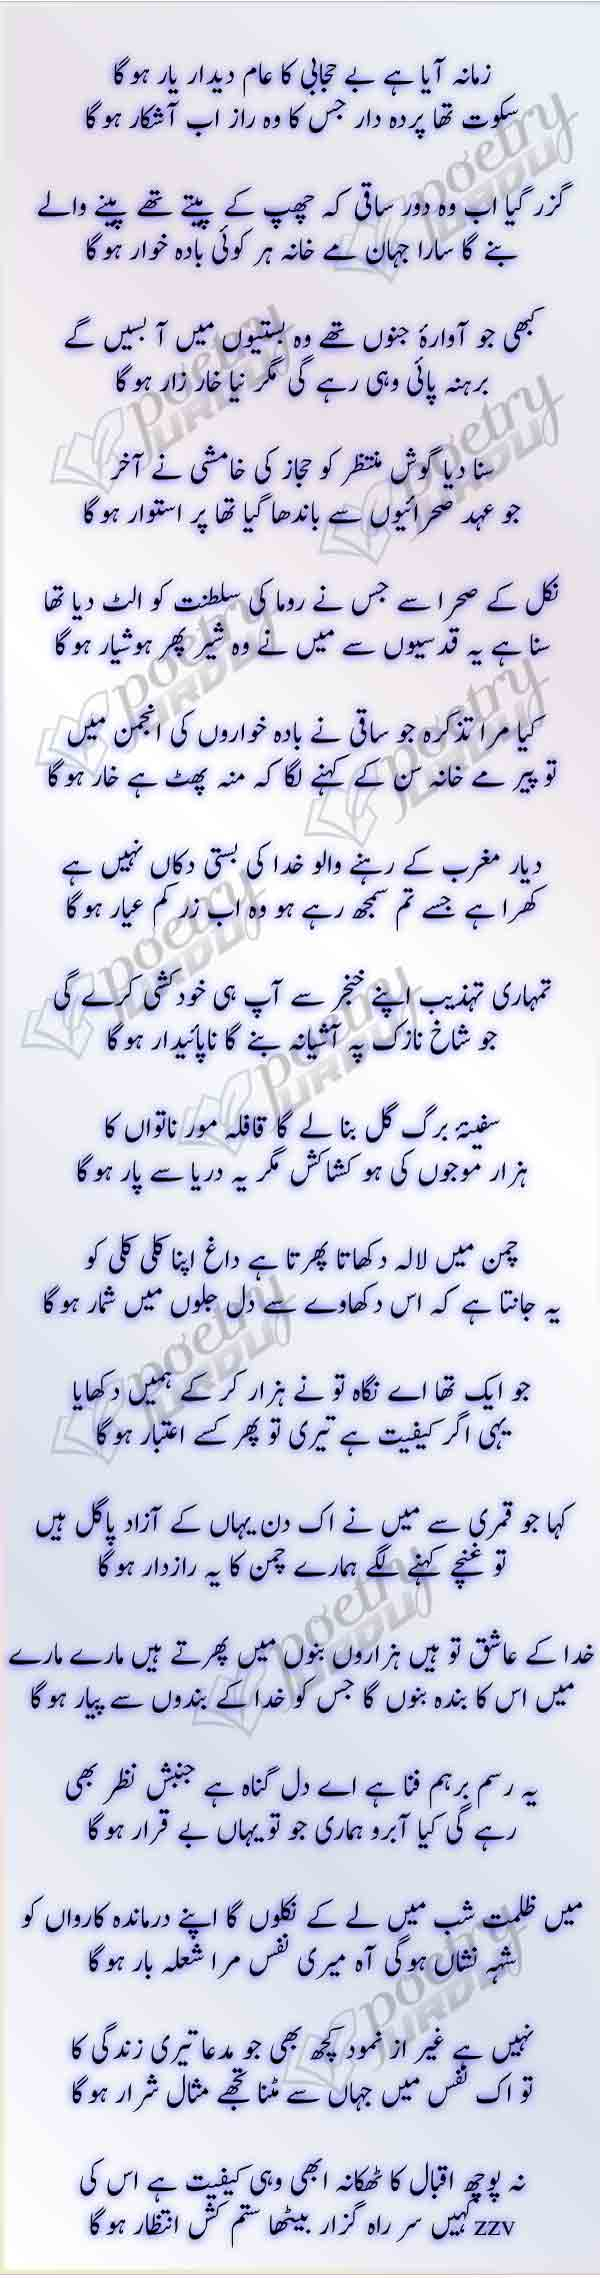 allama iqban urdu poetry